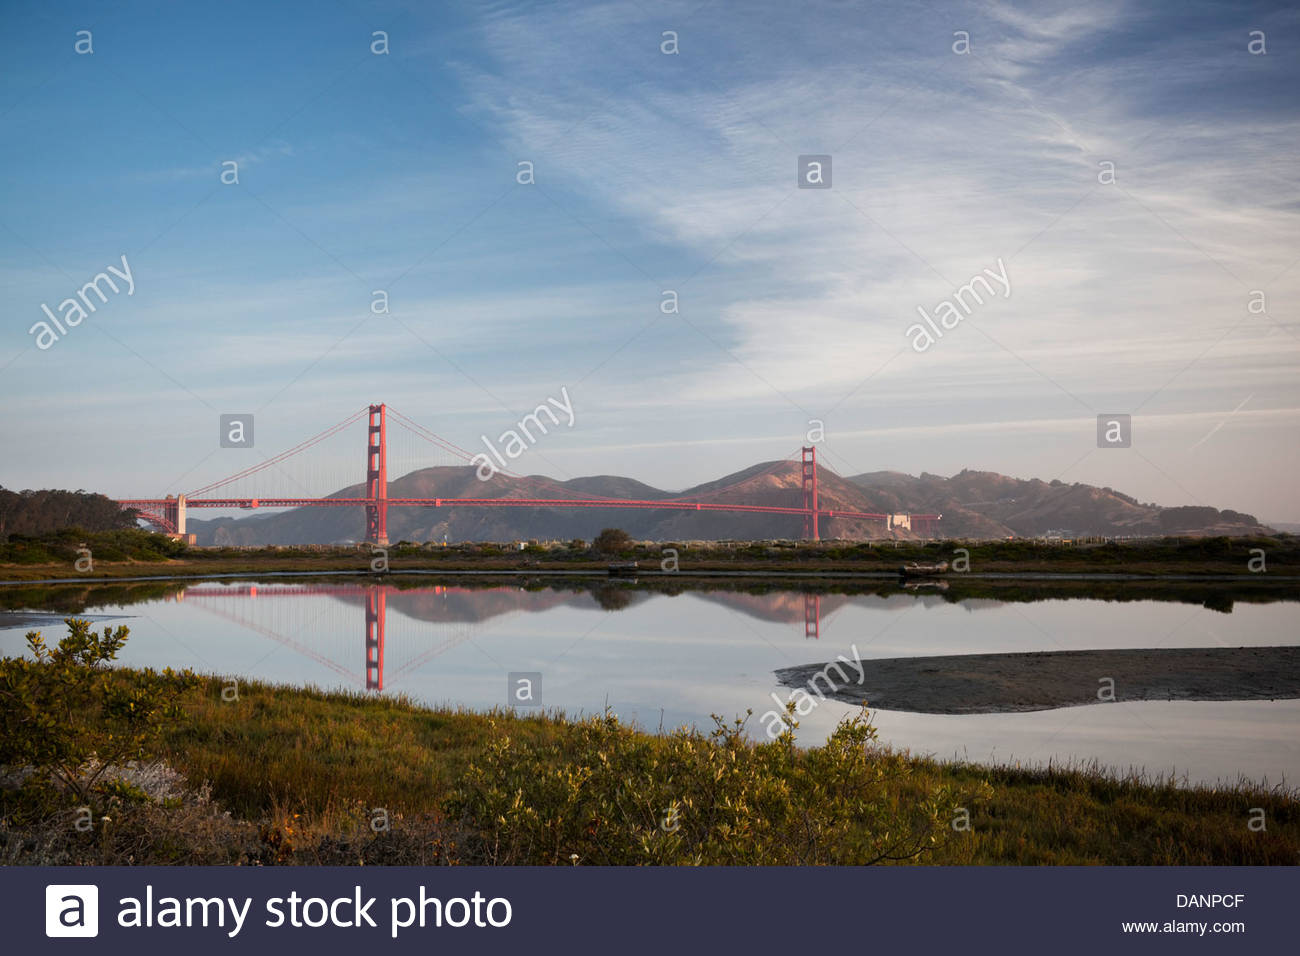 Golden Gate Bridge Morning Reflection in Crissy Field Marsh, San Francisco, California - Stock Image